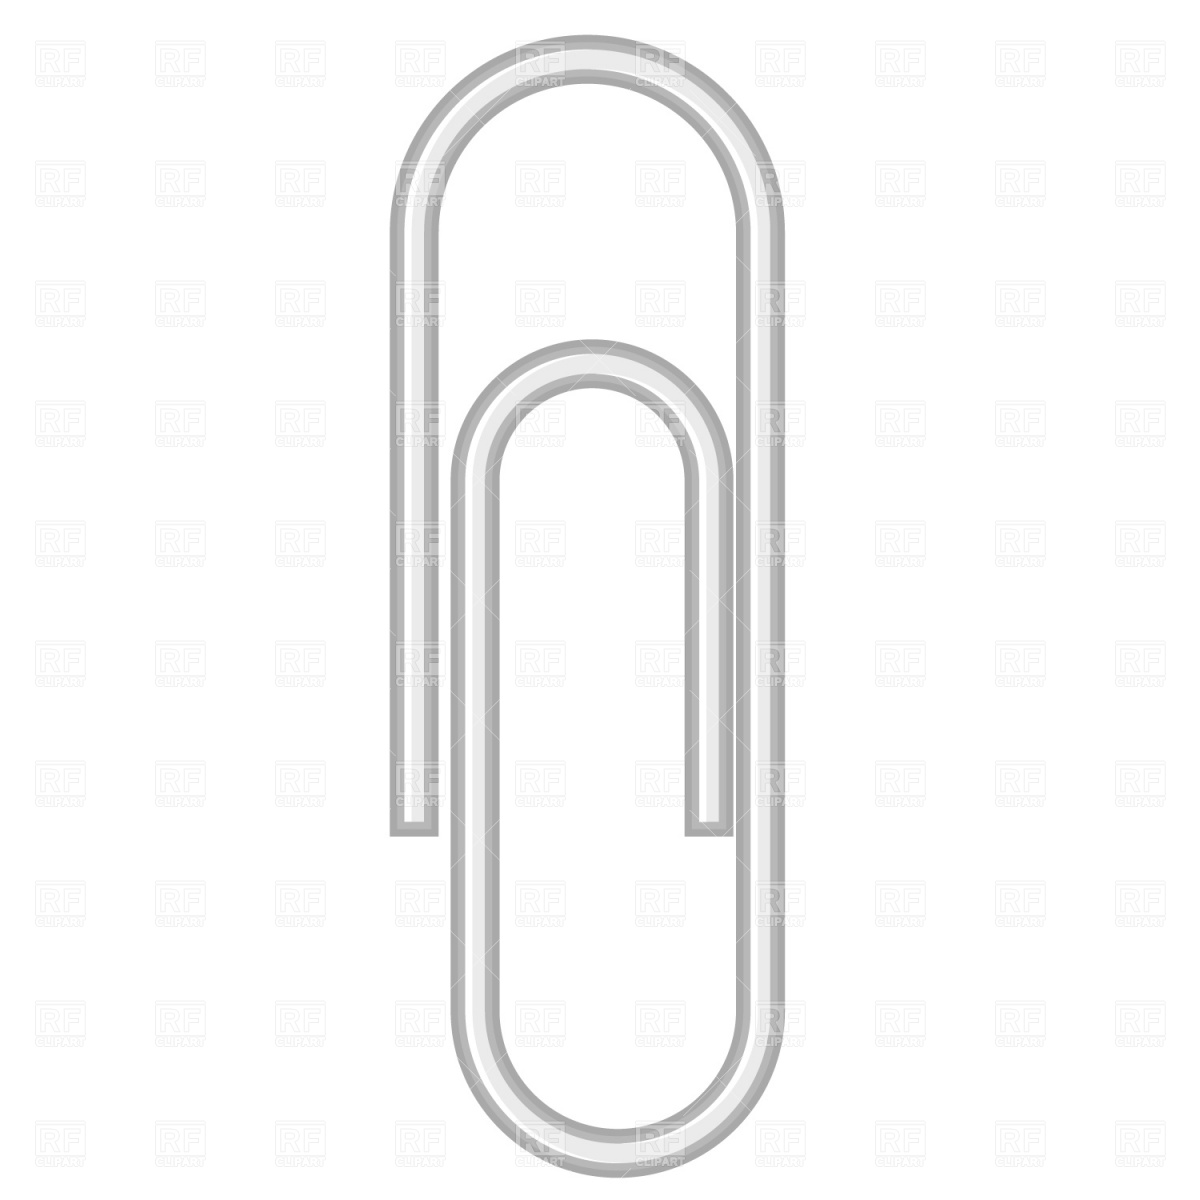 14 Paper Clip Vector Images